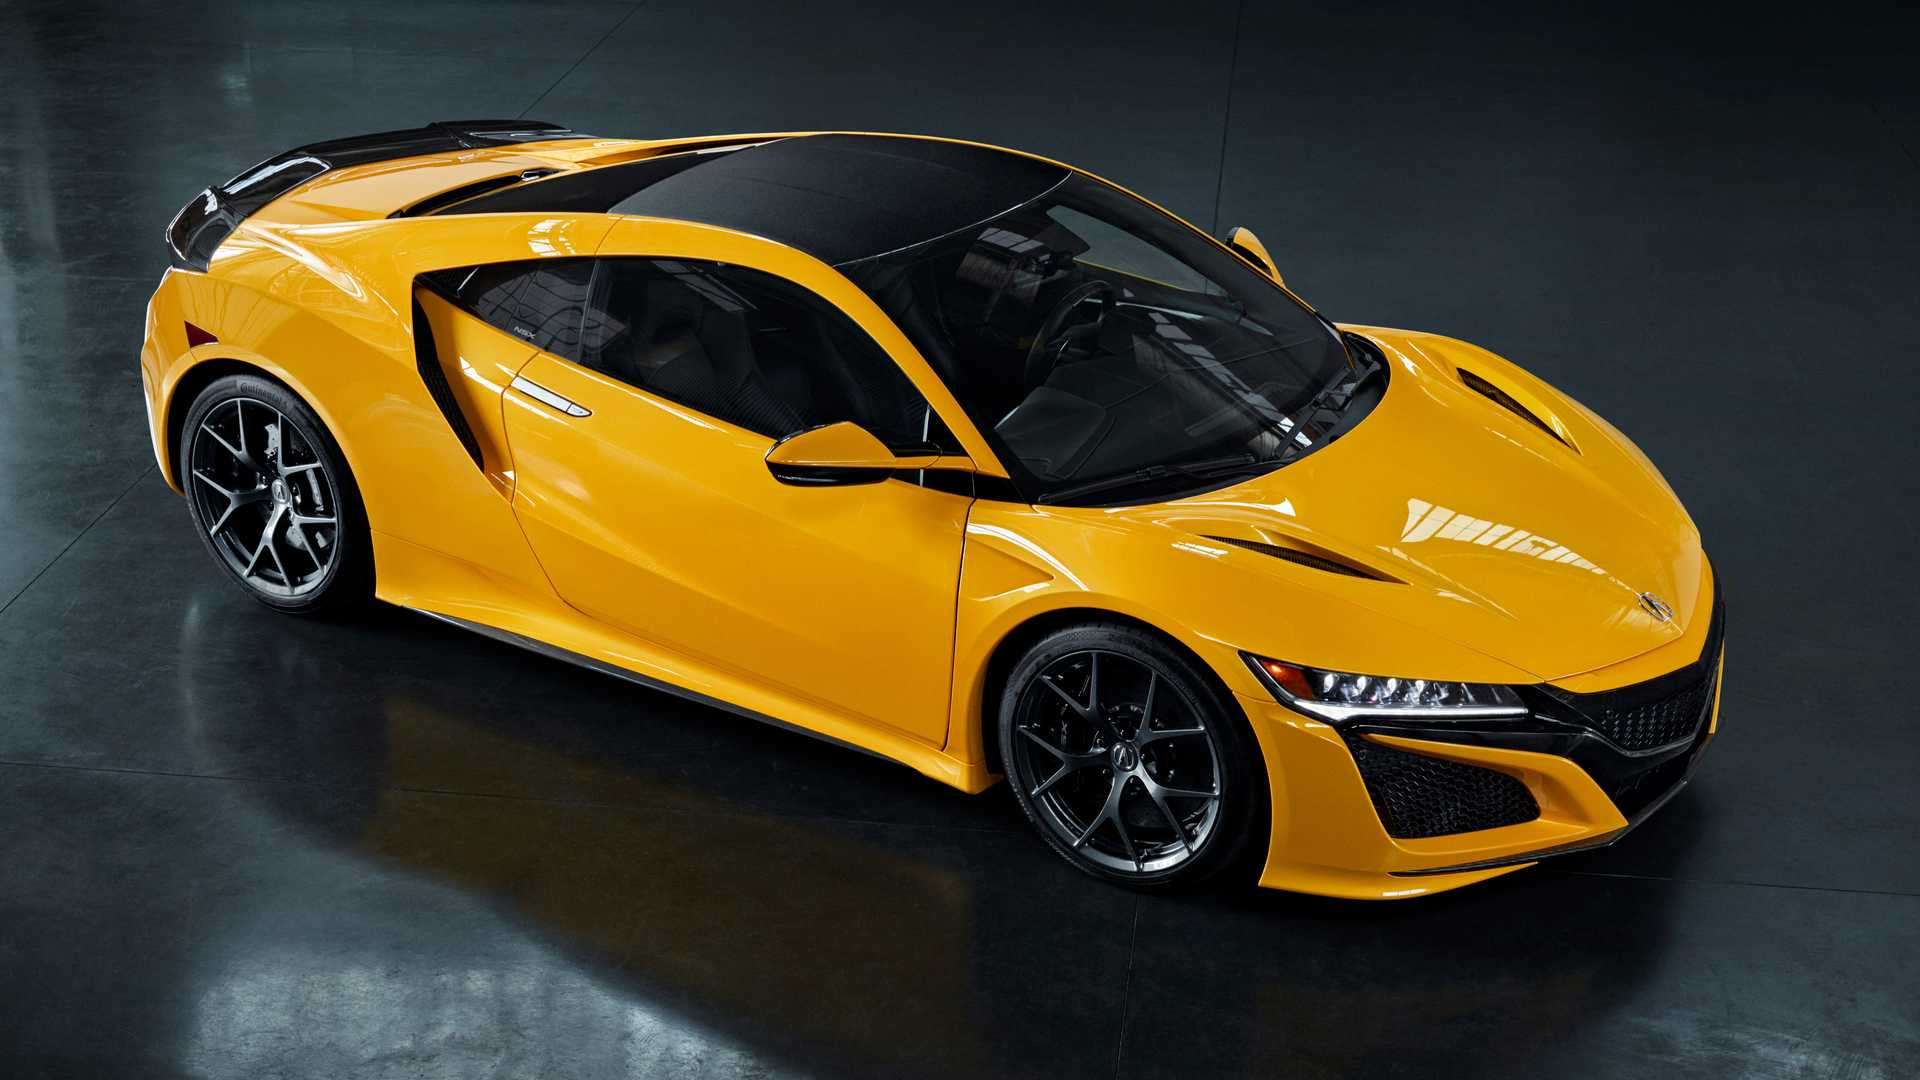 2020 Acura Nsx Indy Yellow Pearl Pays Homage To Nsx Spa Yellow